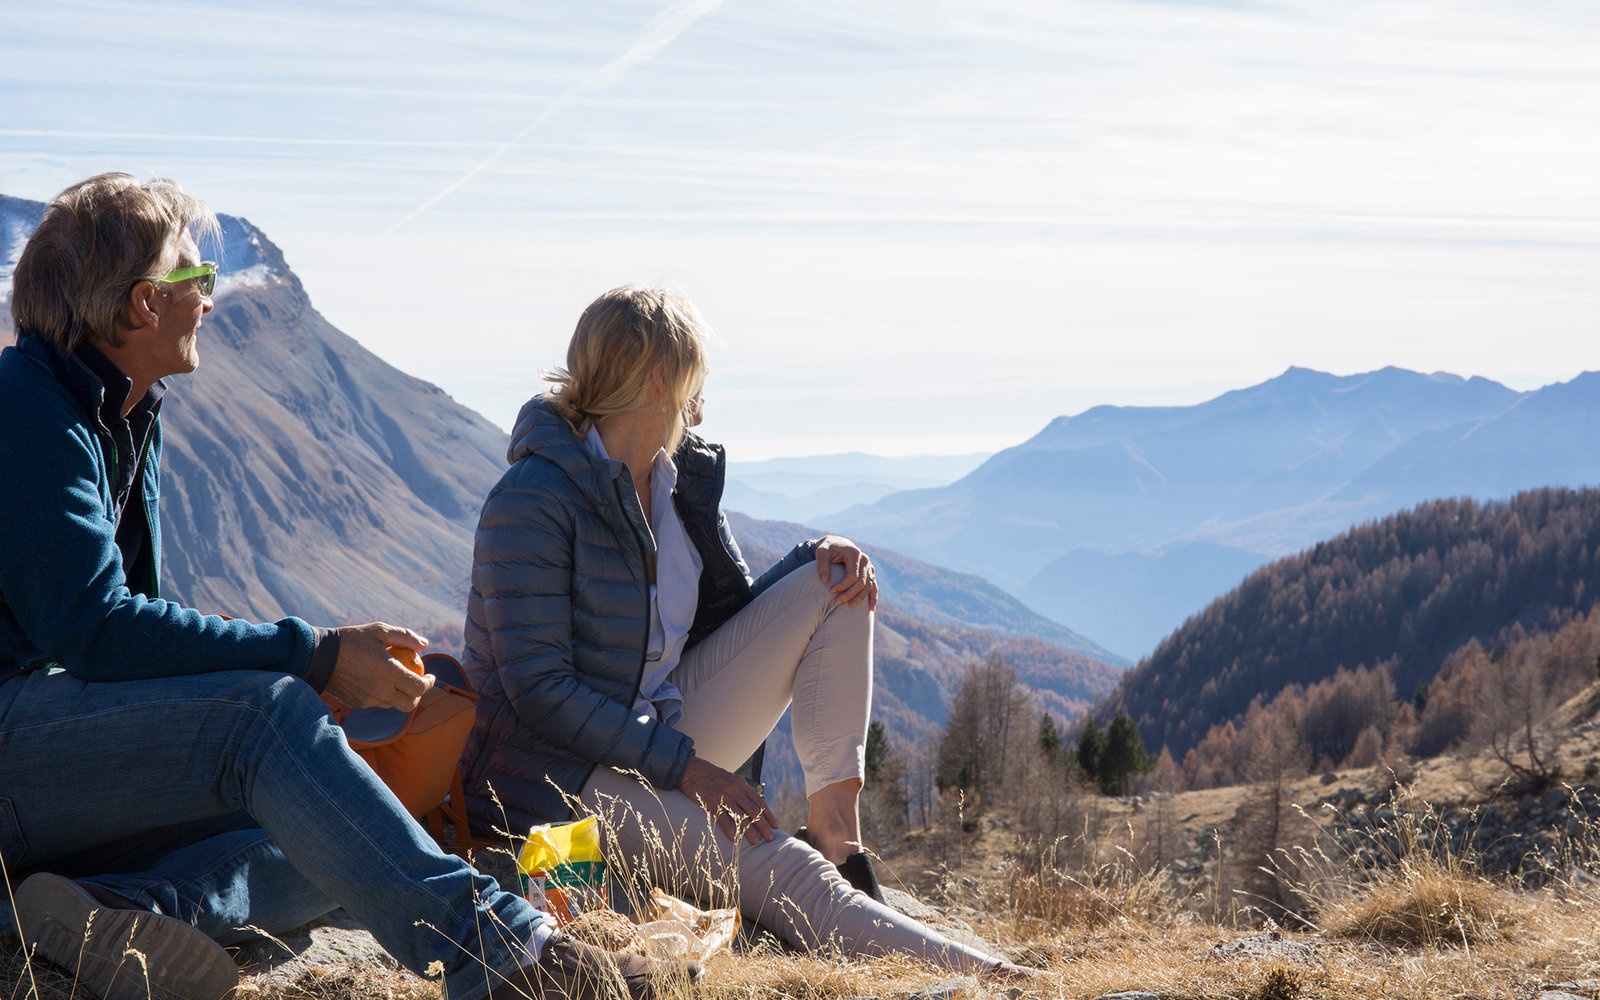 Hiking couple enjoy picnic stop on mtn pass